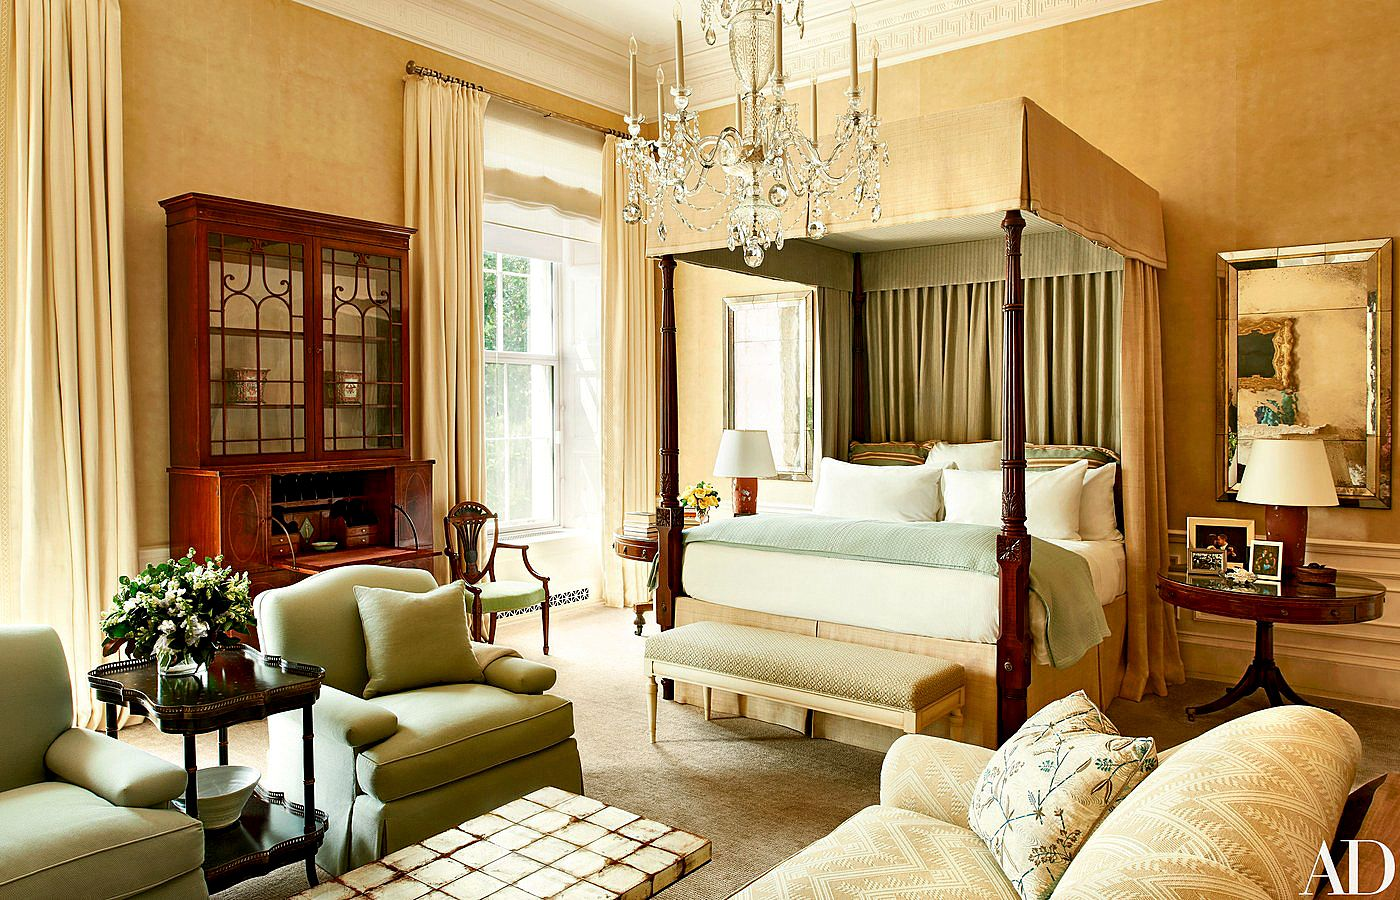 The Obama bedroom - these two rooms couldn't be more different,although the chandelier remains the same in both...I'm not usually a fan of antique canopy beds but this one's so beautiful who could possibly resist it - understated luxury indeed